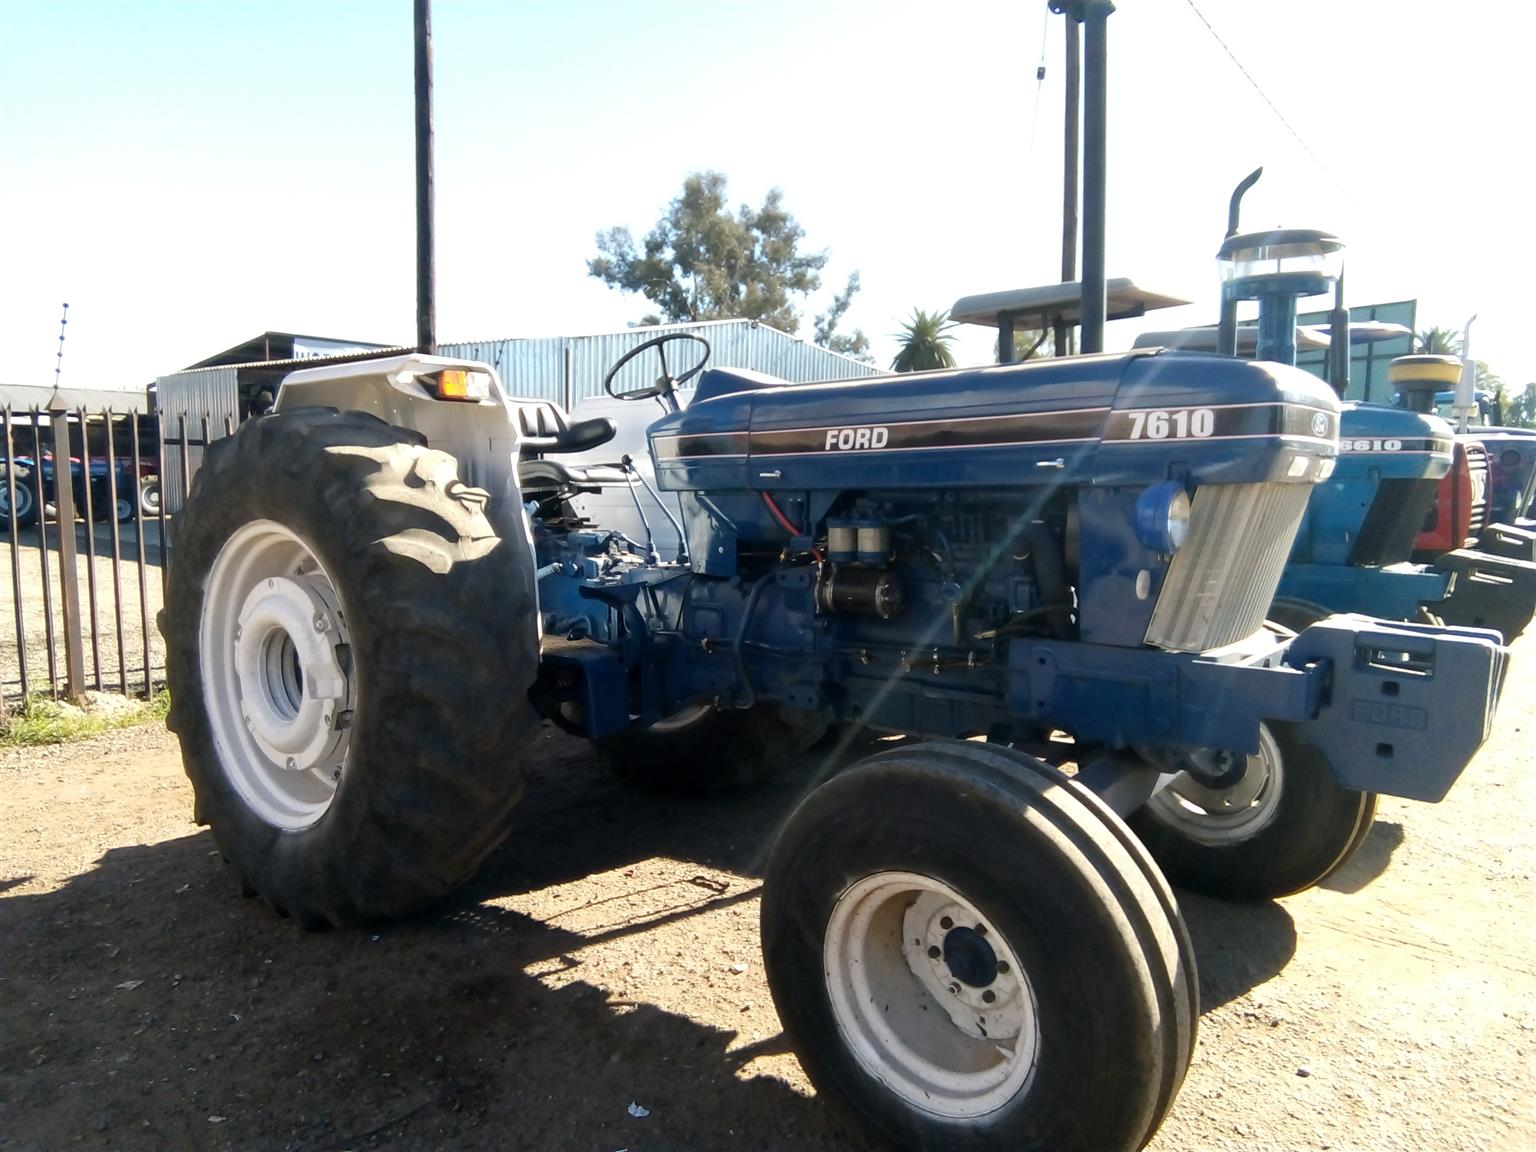 S3008 Blue Ford 7610 2x4 Pre-Owned Tractor